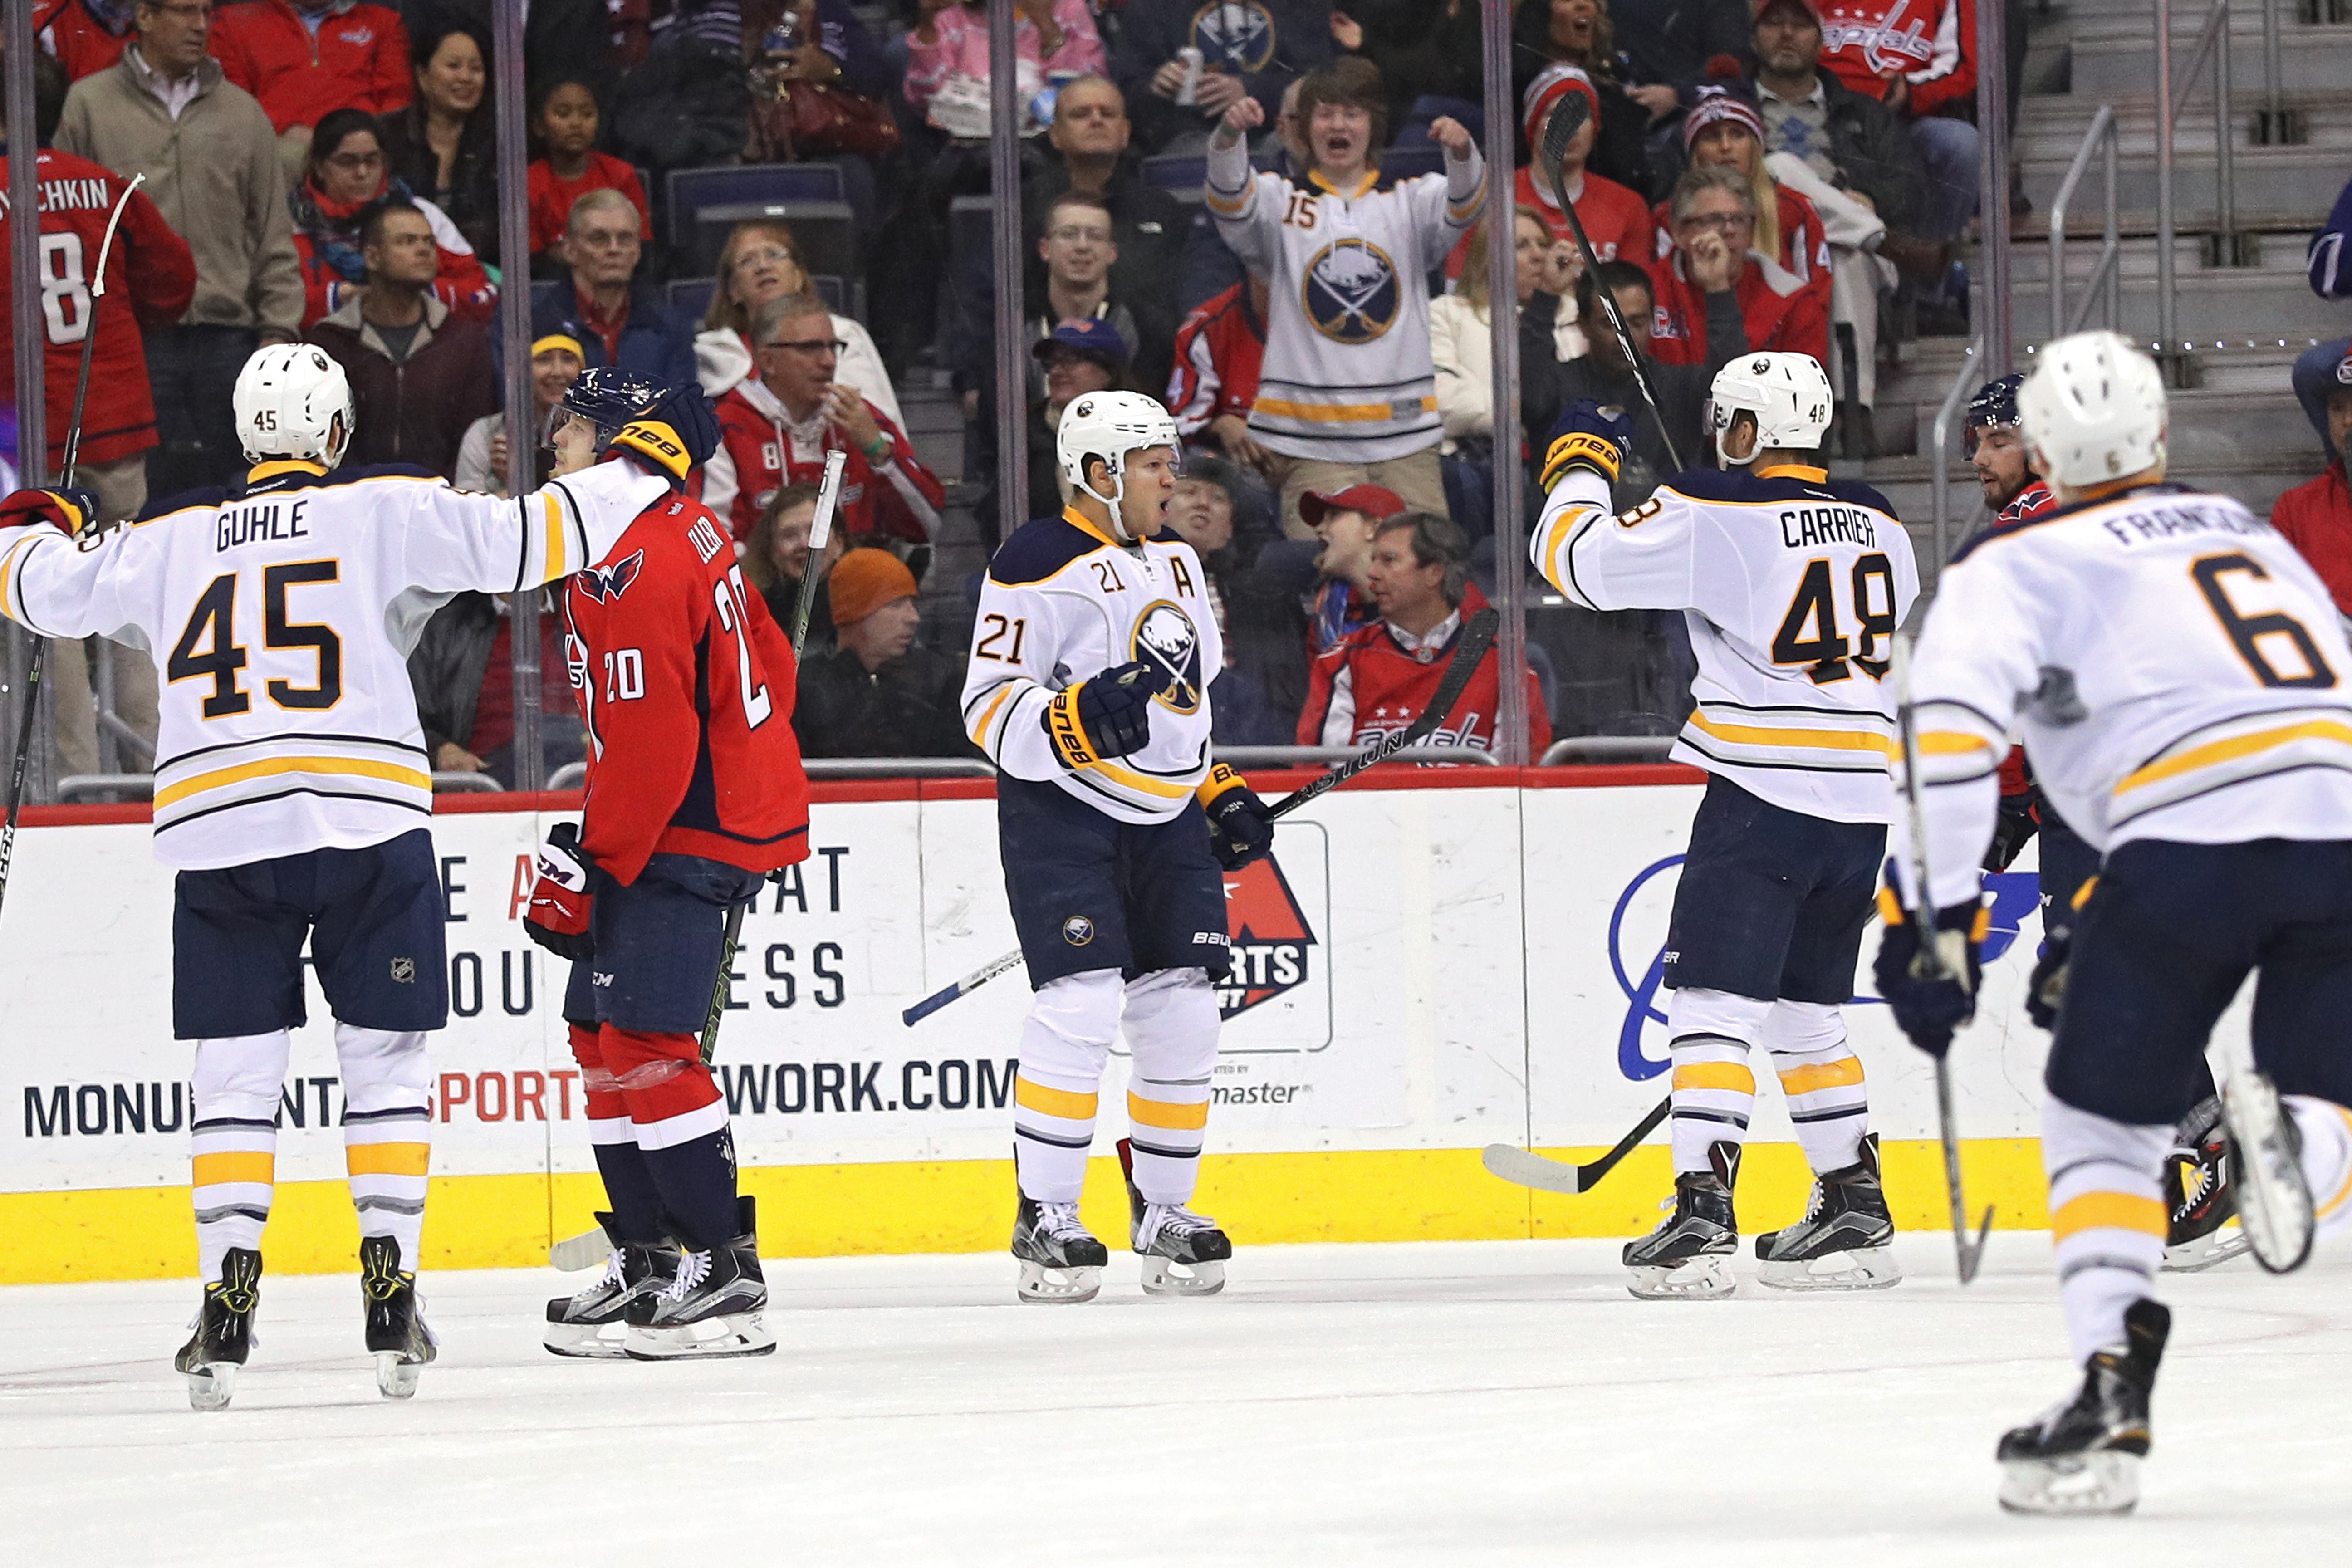 Kyle Okposo (21) has four goals and eight points in the Sabres' last nine games. (Getty Images)